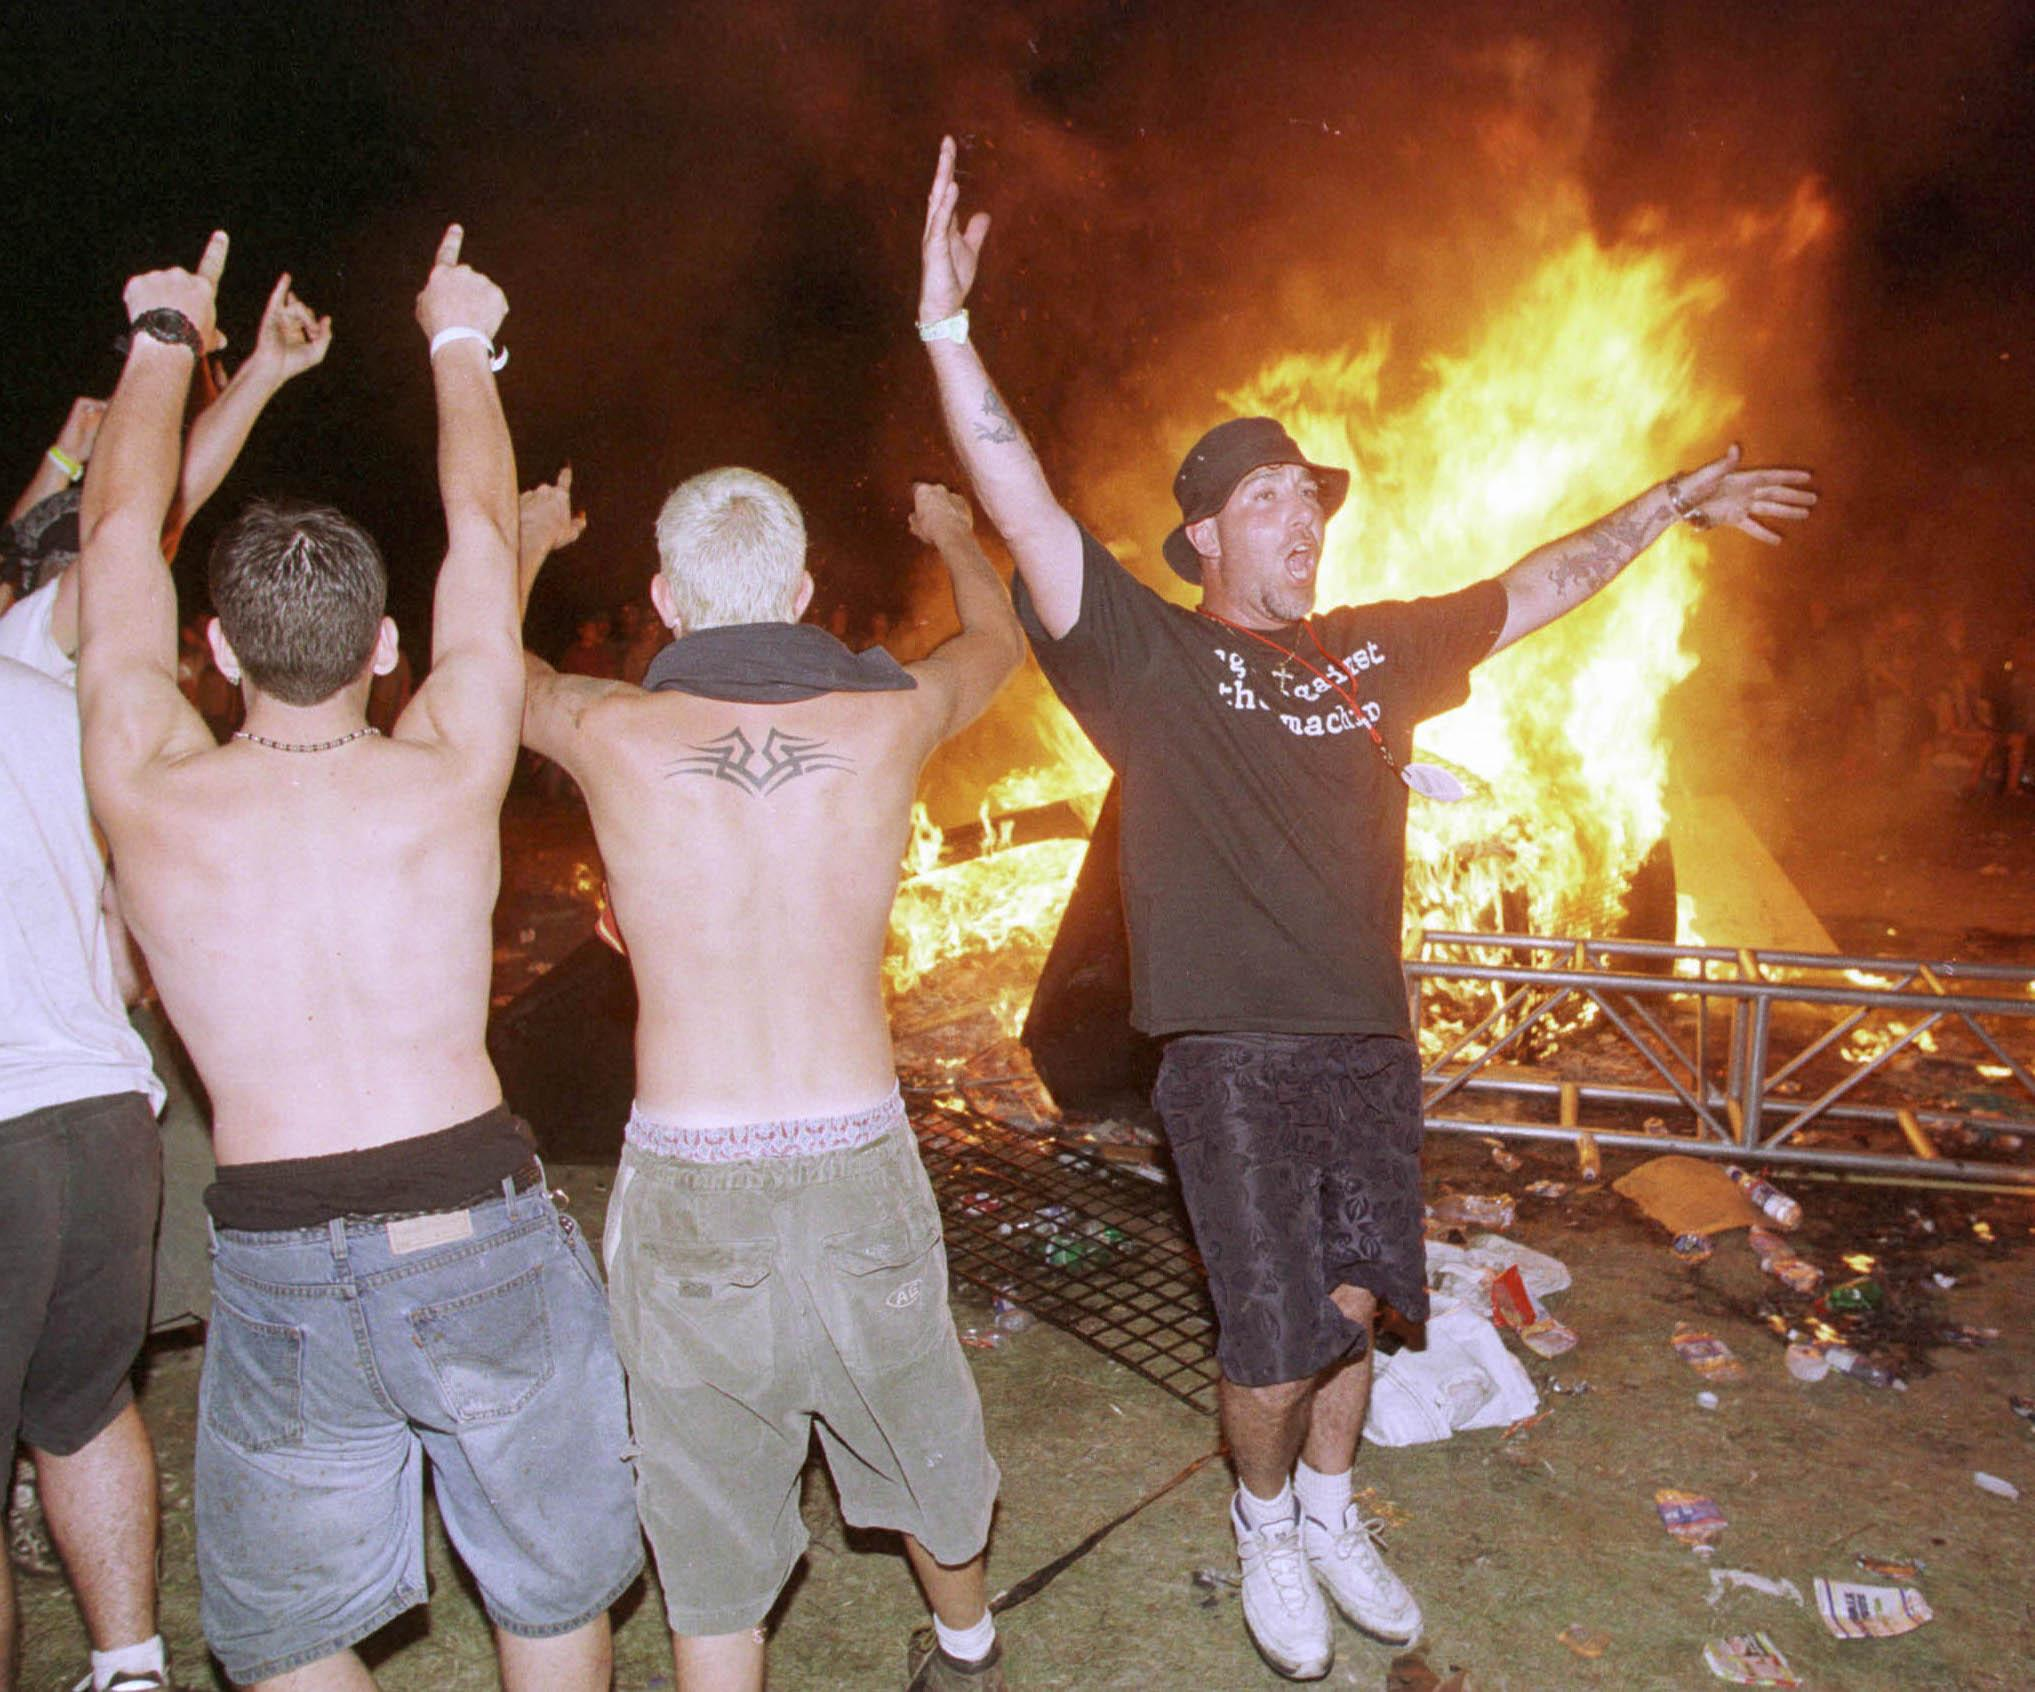 When Woodstock '99 riots erupted during Red Hot Chili